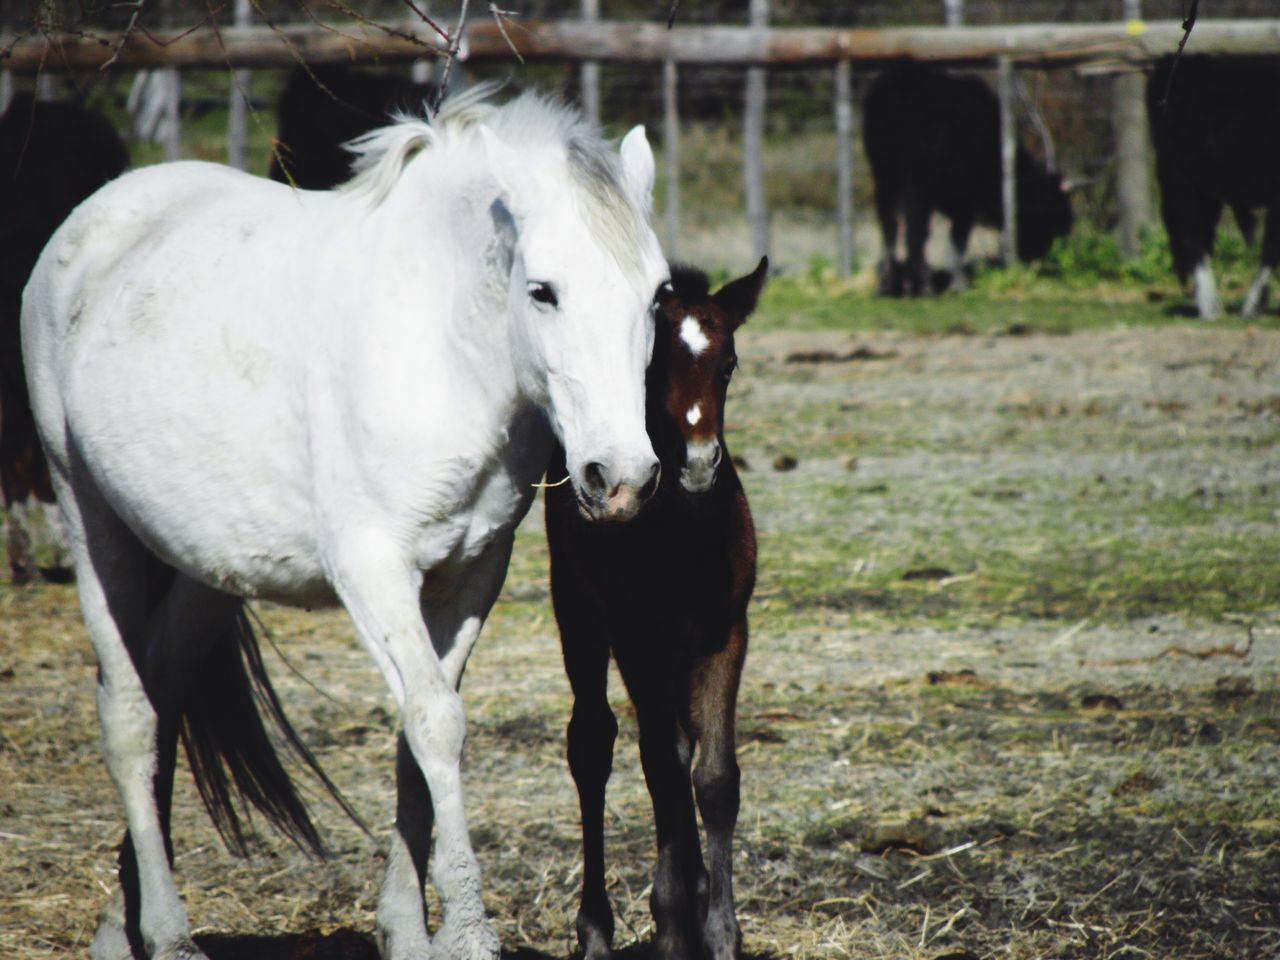 Animal Themes Livestock Horse Horses Two Horses Baby Horse White Horse Family Foal Mammal Outdoors No People Cattle Nature Day Close-up